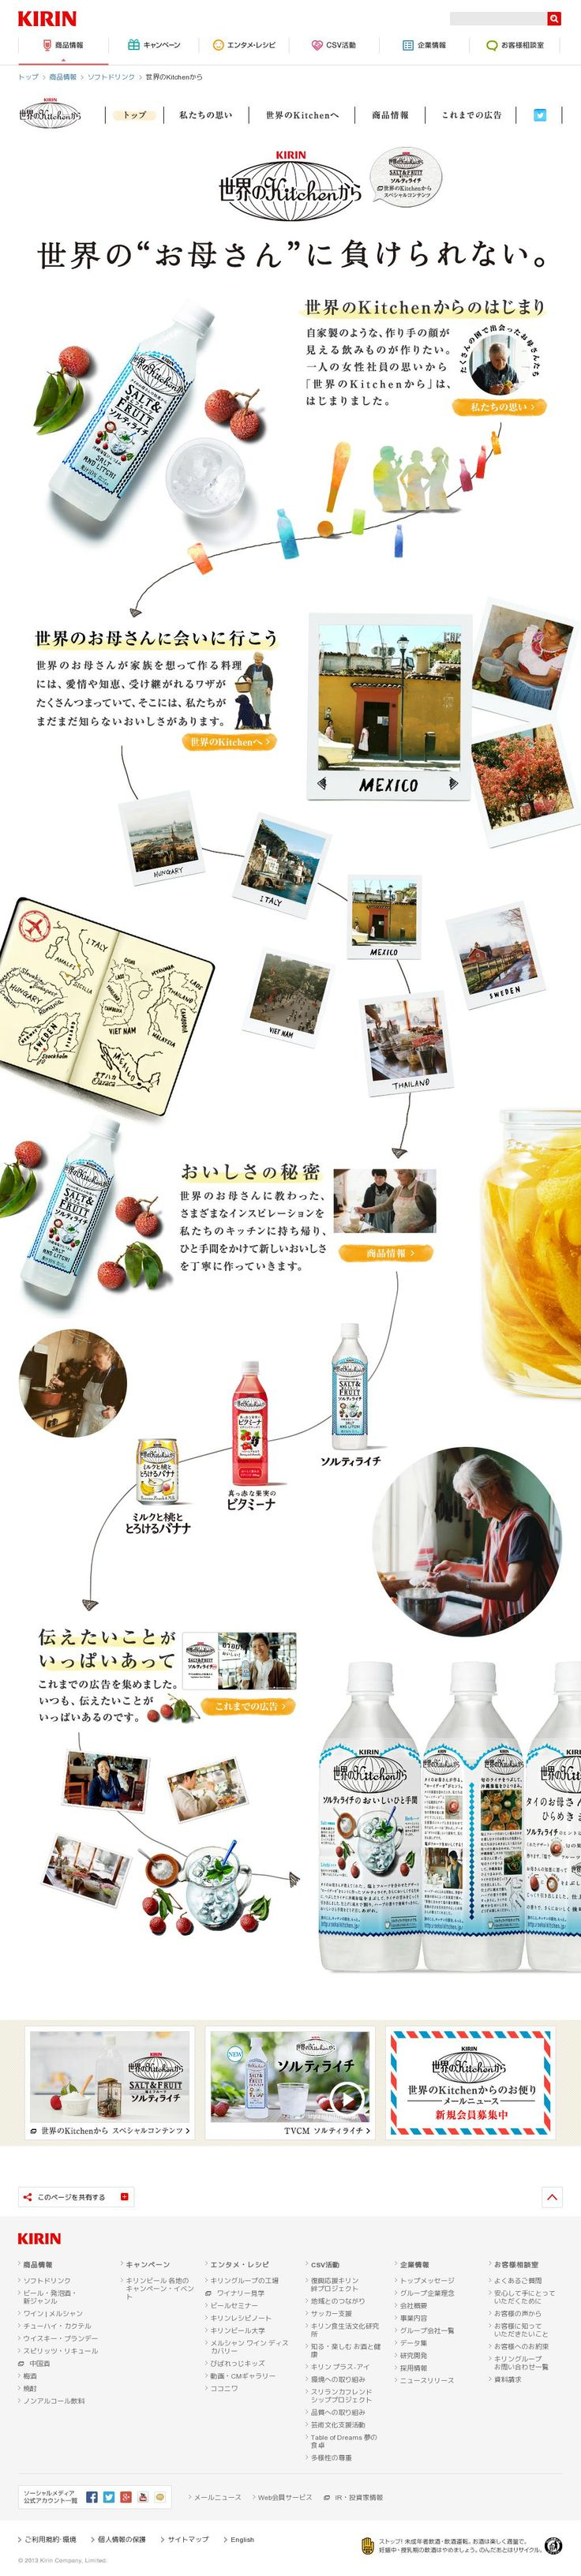 #kirin #product #drink #white #map